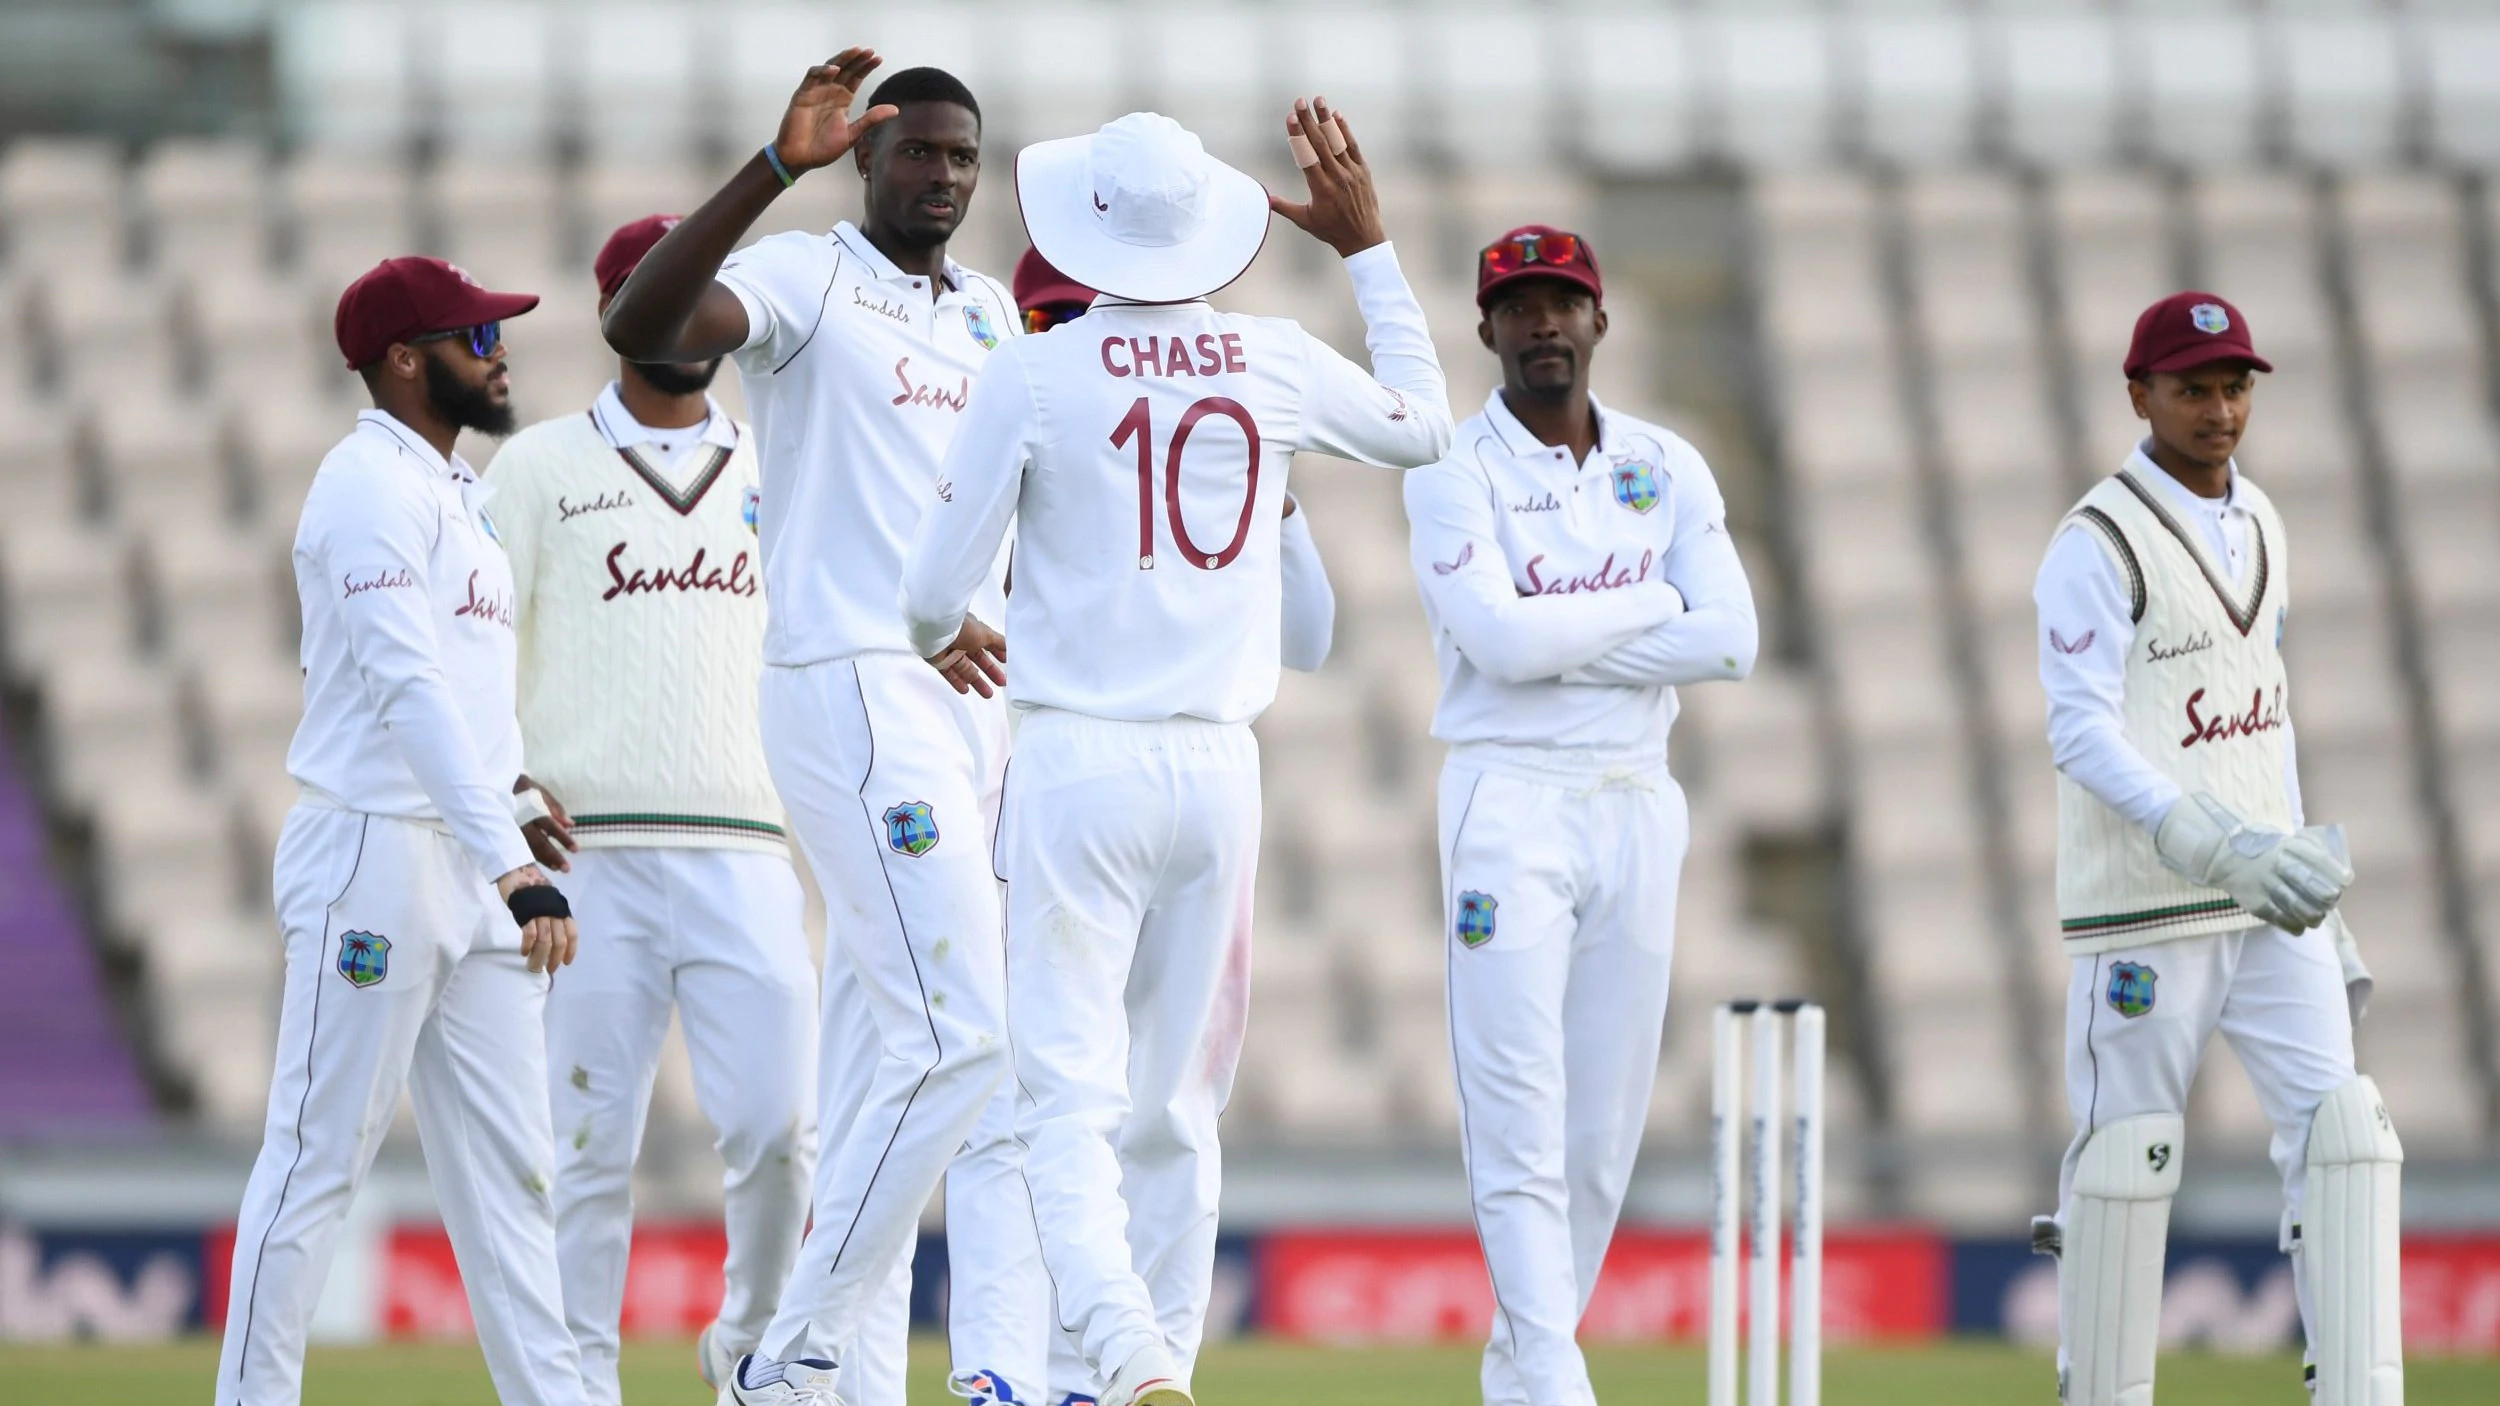 Cricket West Indies announces men's annual contracts for 2021-22 season